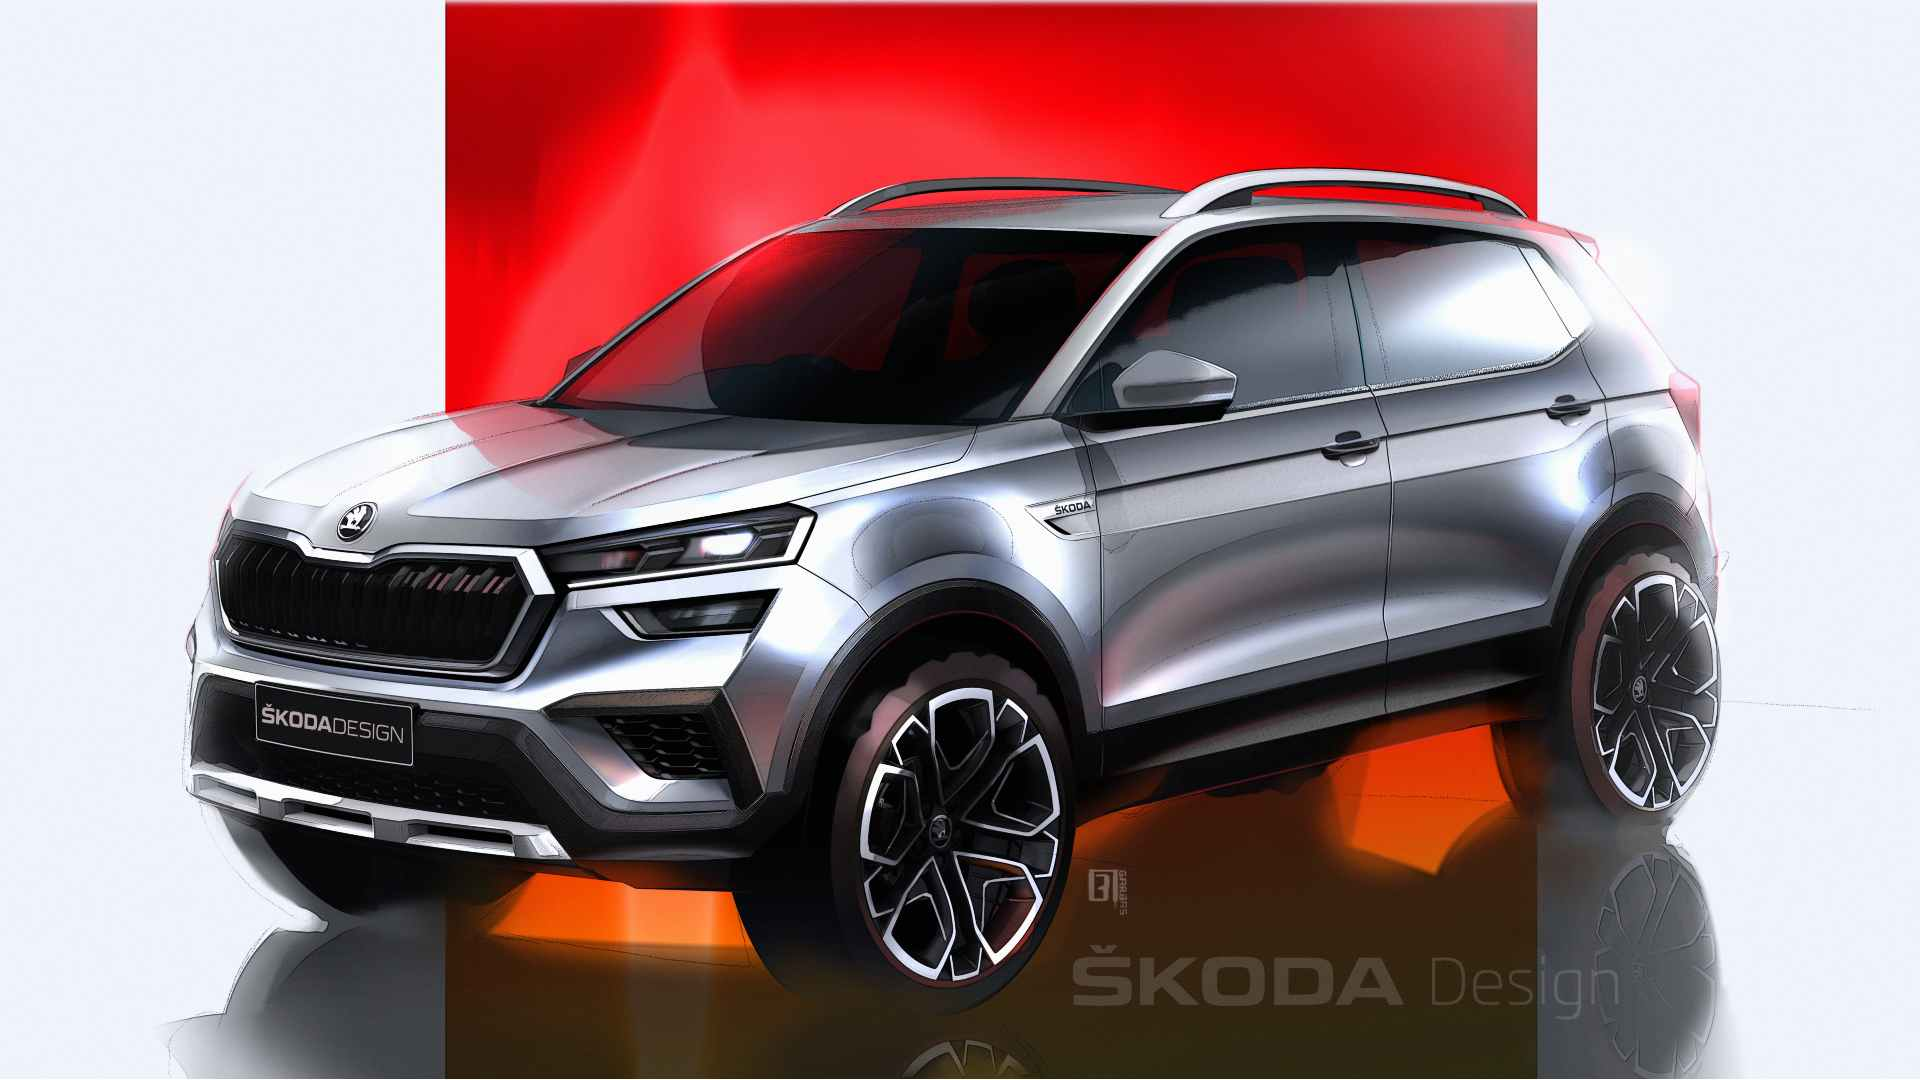 Skoda Kushaq previewed in official sketches ahead of world premiere on 18 March